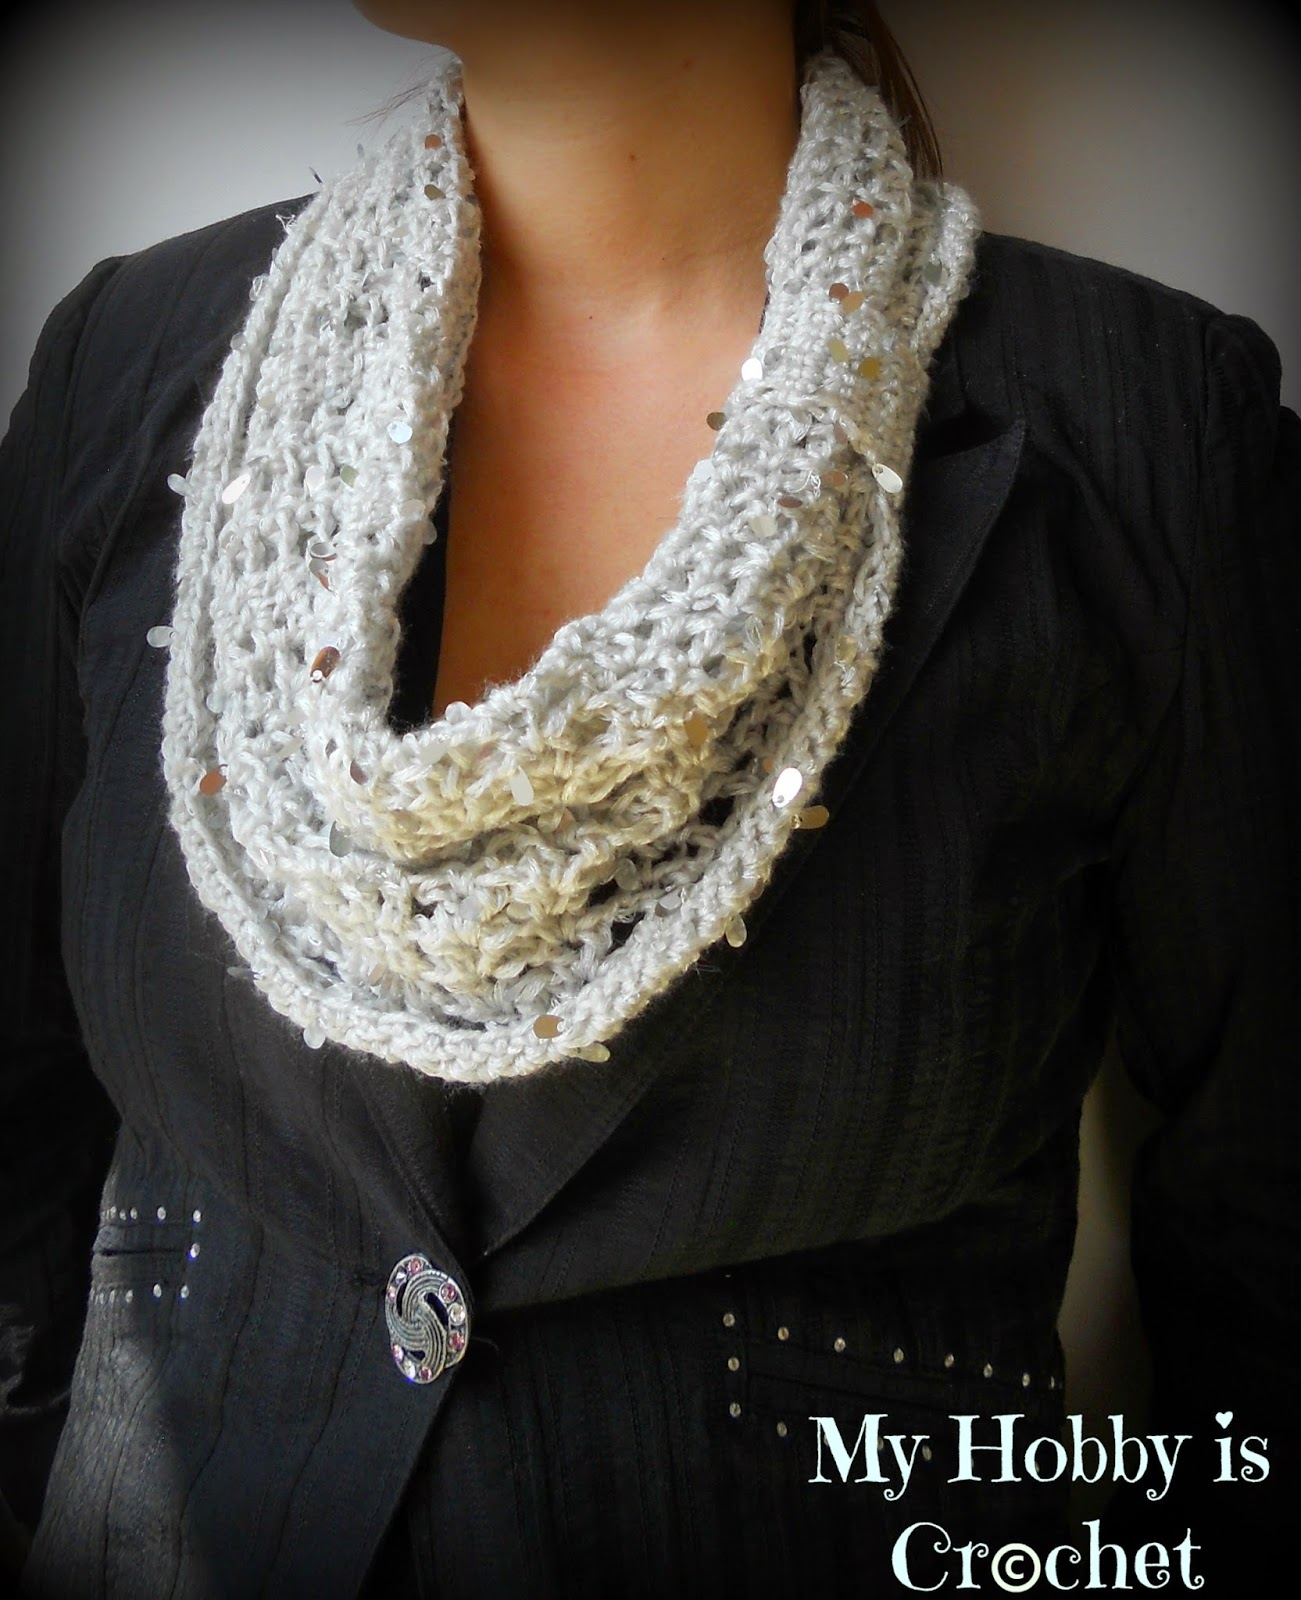 Free Crochet Patterns With Instructions : ... Crochet: Swanky Glam Cowl - Free Crochet Pattern: Written Instructions